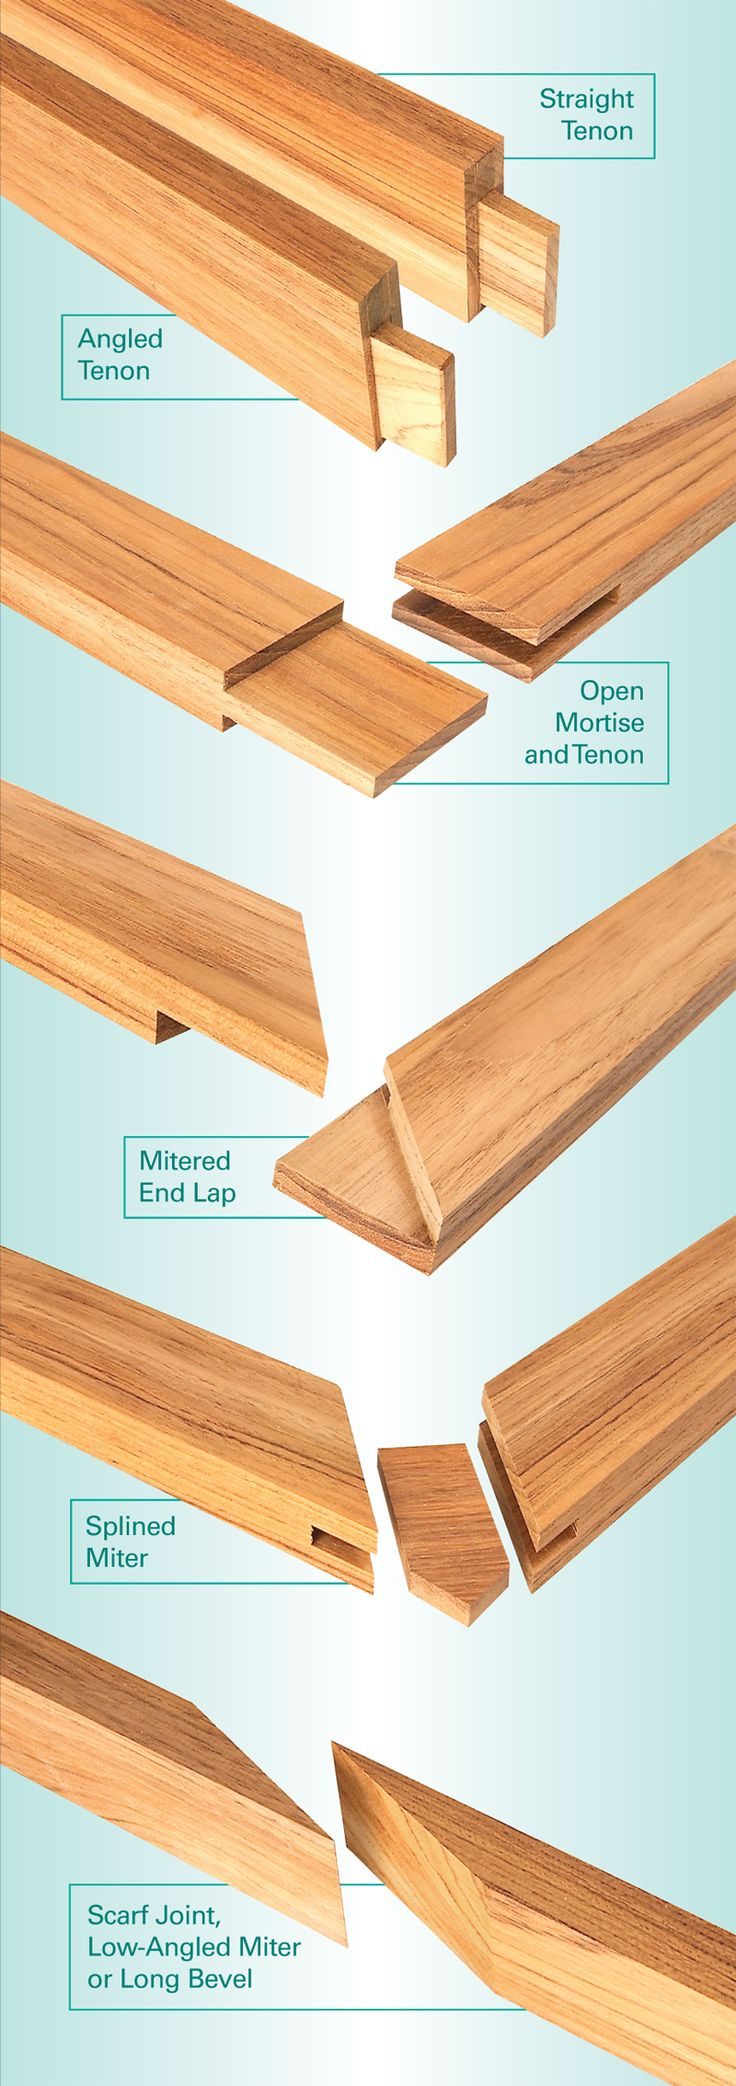 Woodworking Jigs | This remarkable jig cuts all these tenons with exquisite precision. For more please visit: http://www.flyfreshforever.com